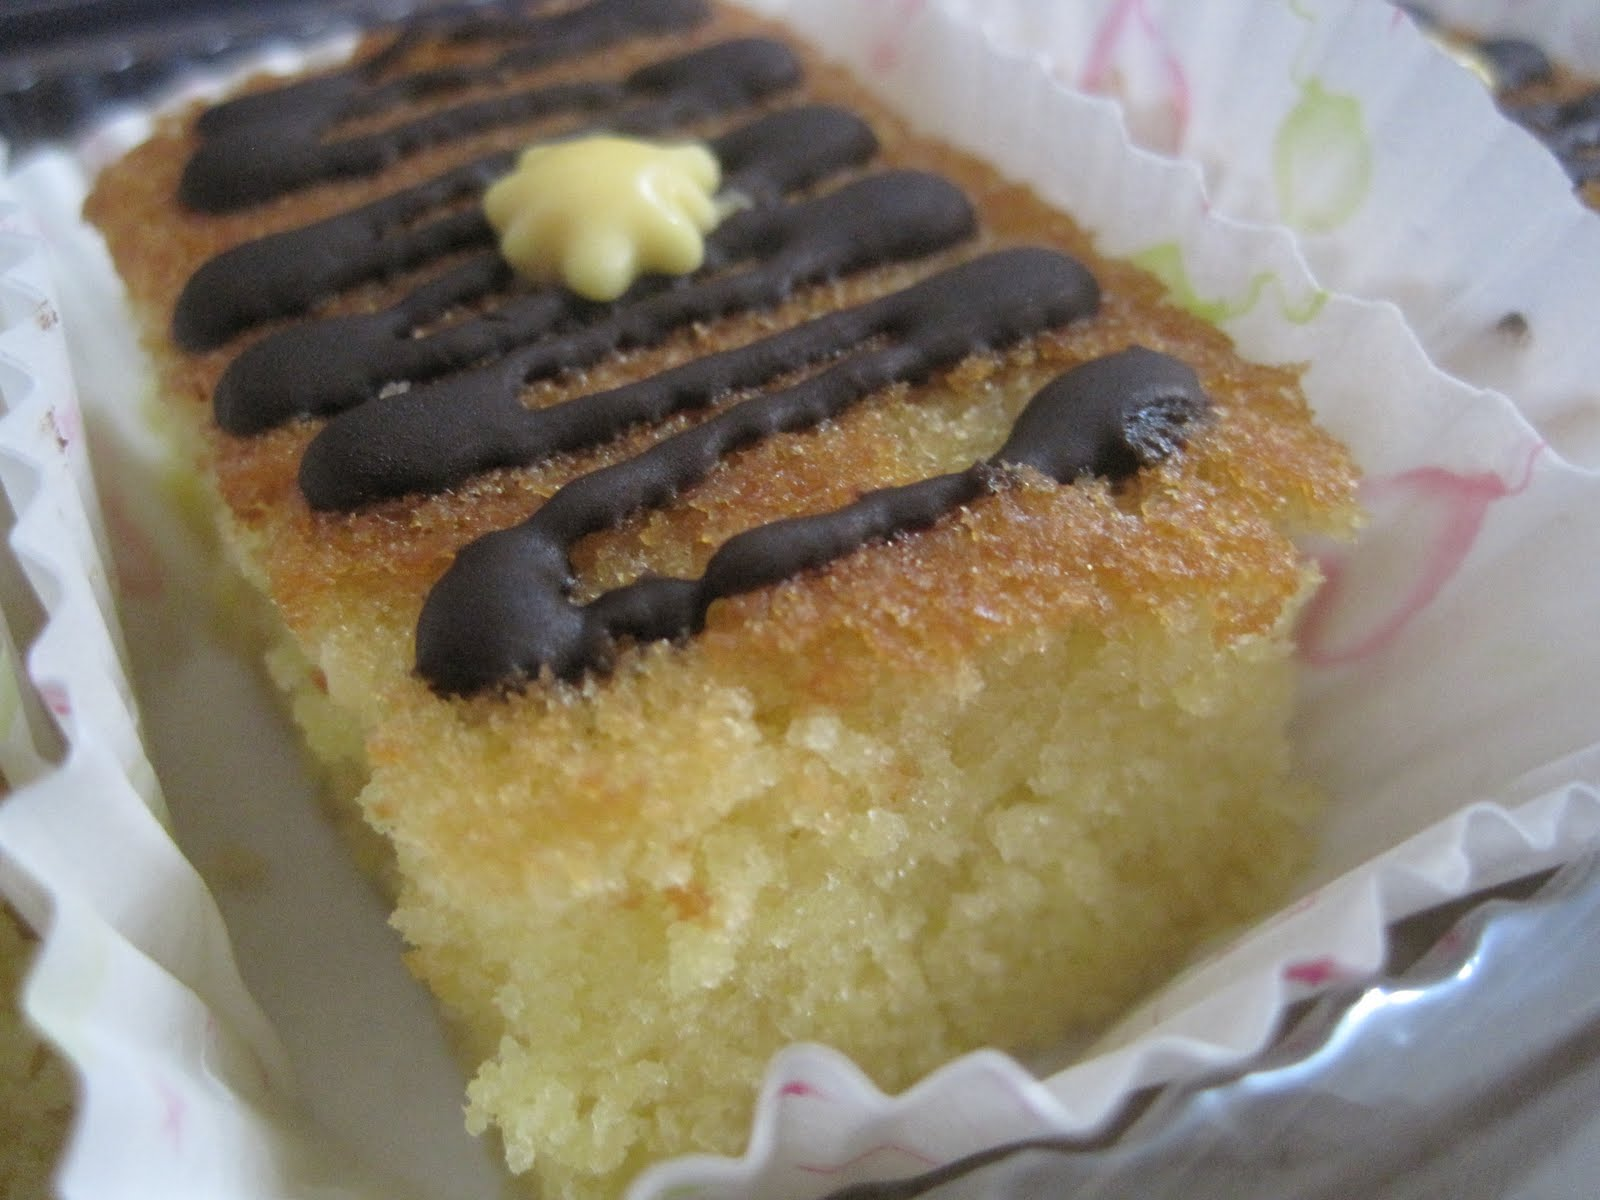 Resep Cake Pastry Ncc: Tian Cakes: Butter Cake 2 Telur Resep NCC